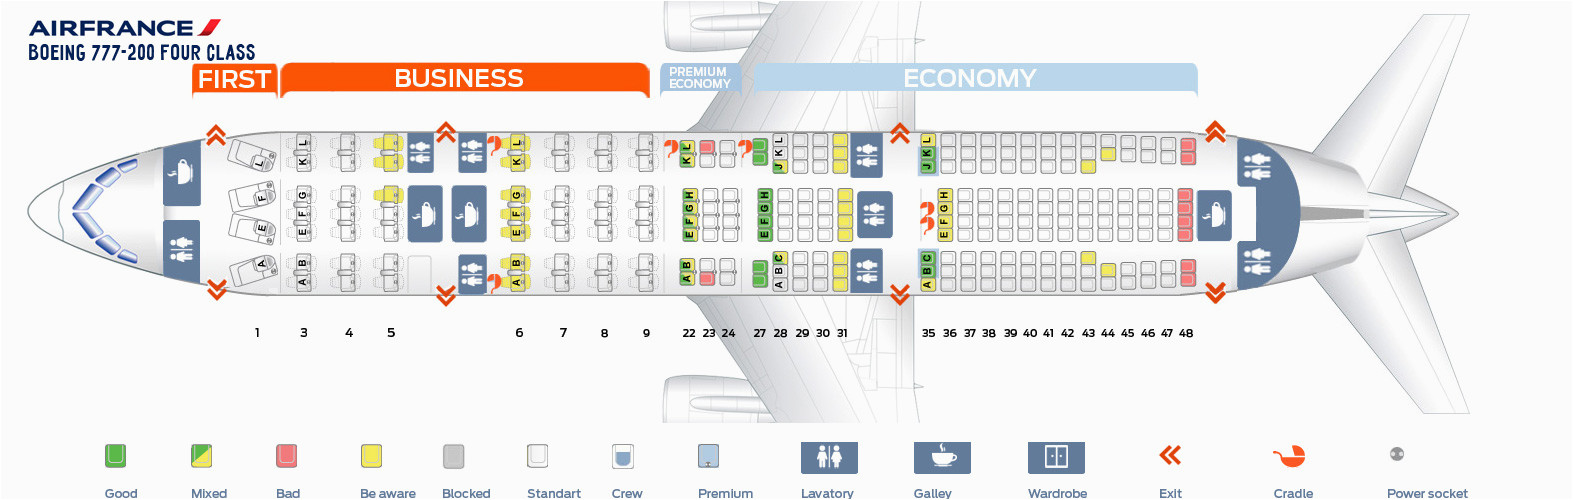 Air France 777-200 Seat Map Boeing 777 200er Seat Map Air France Review Home Decor